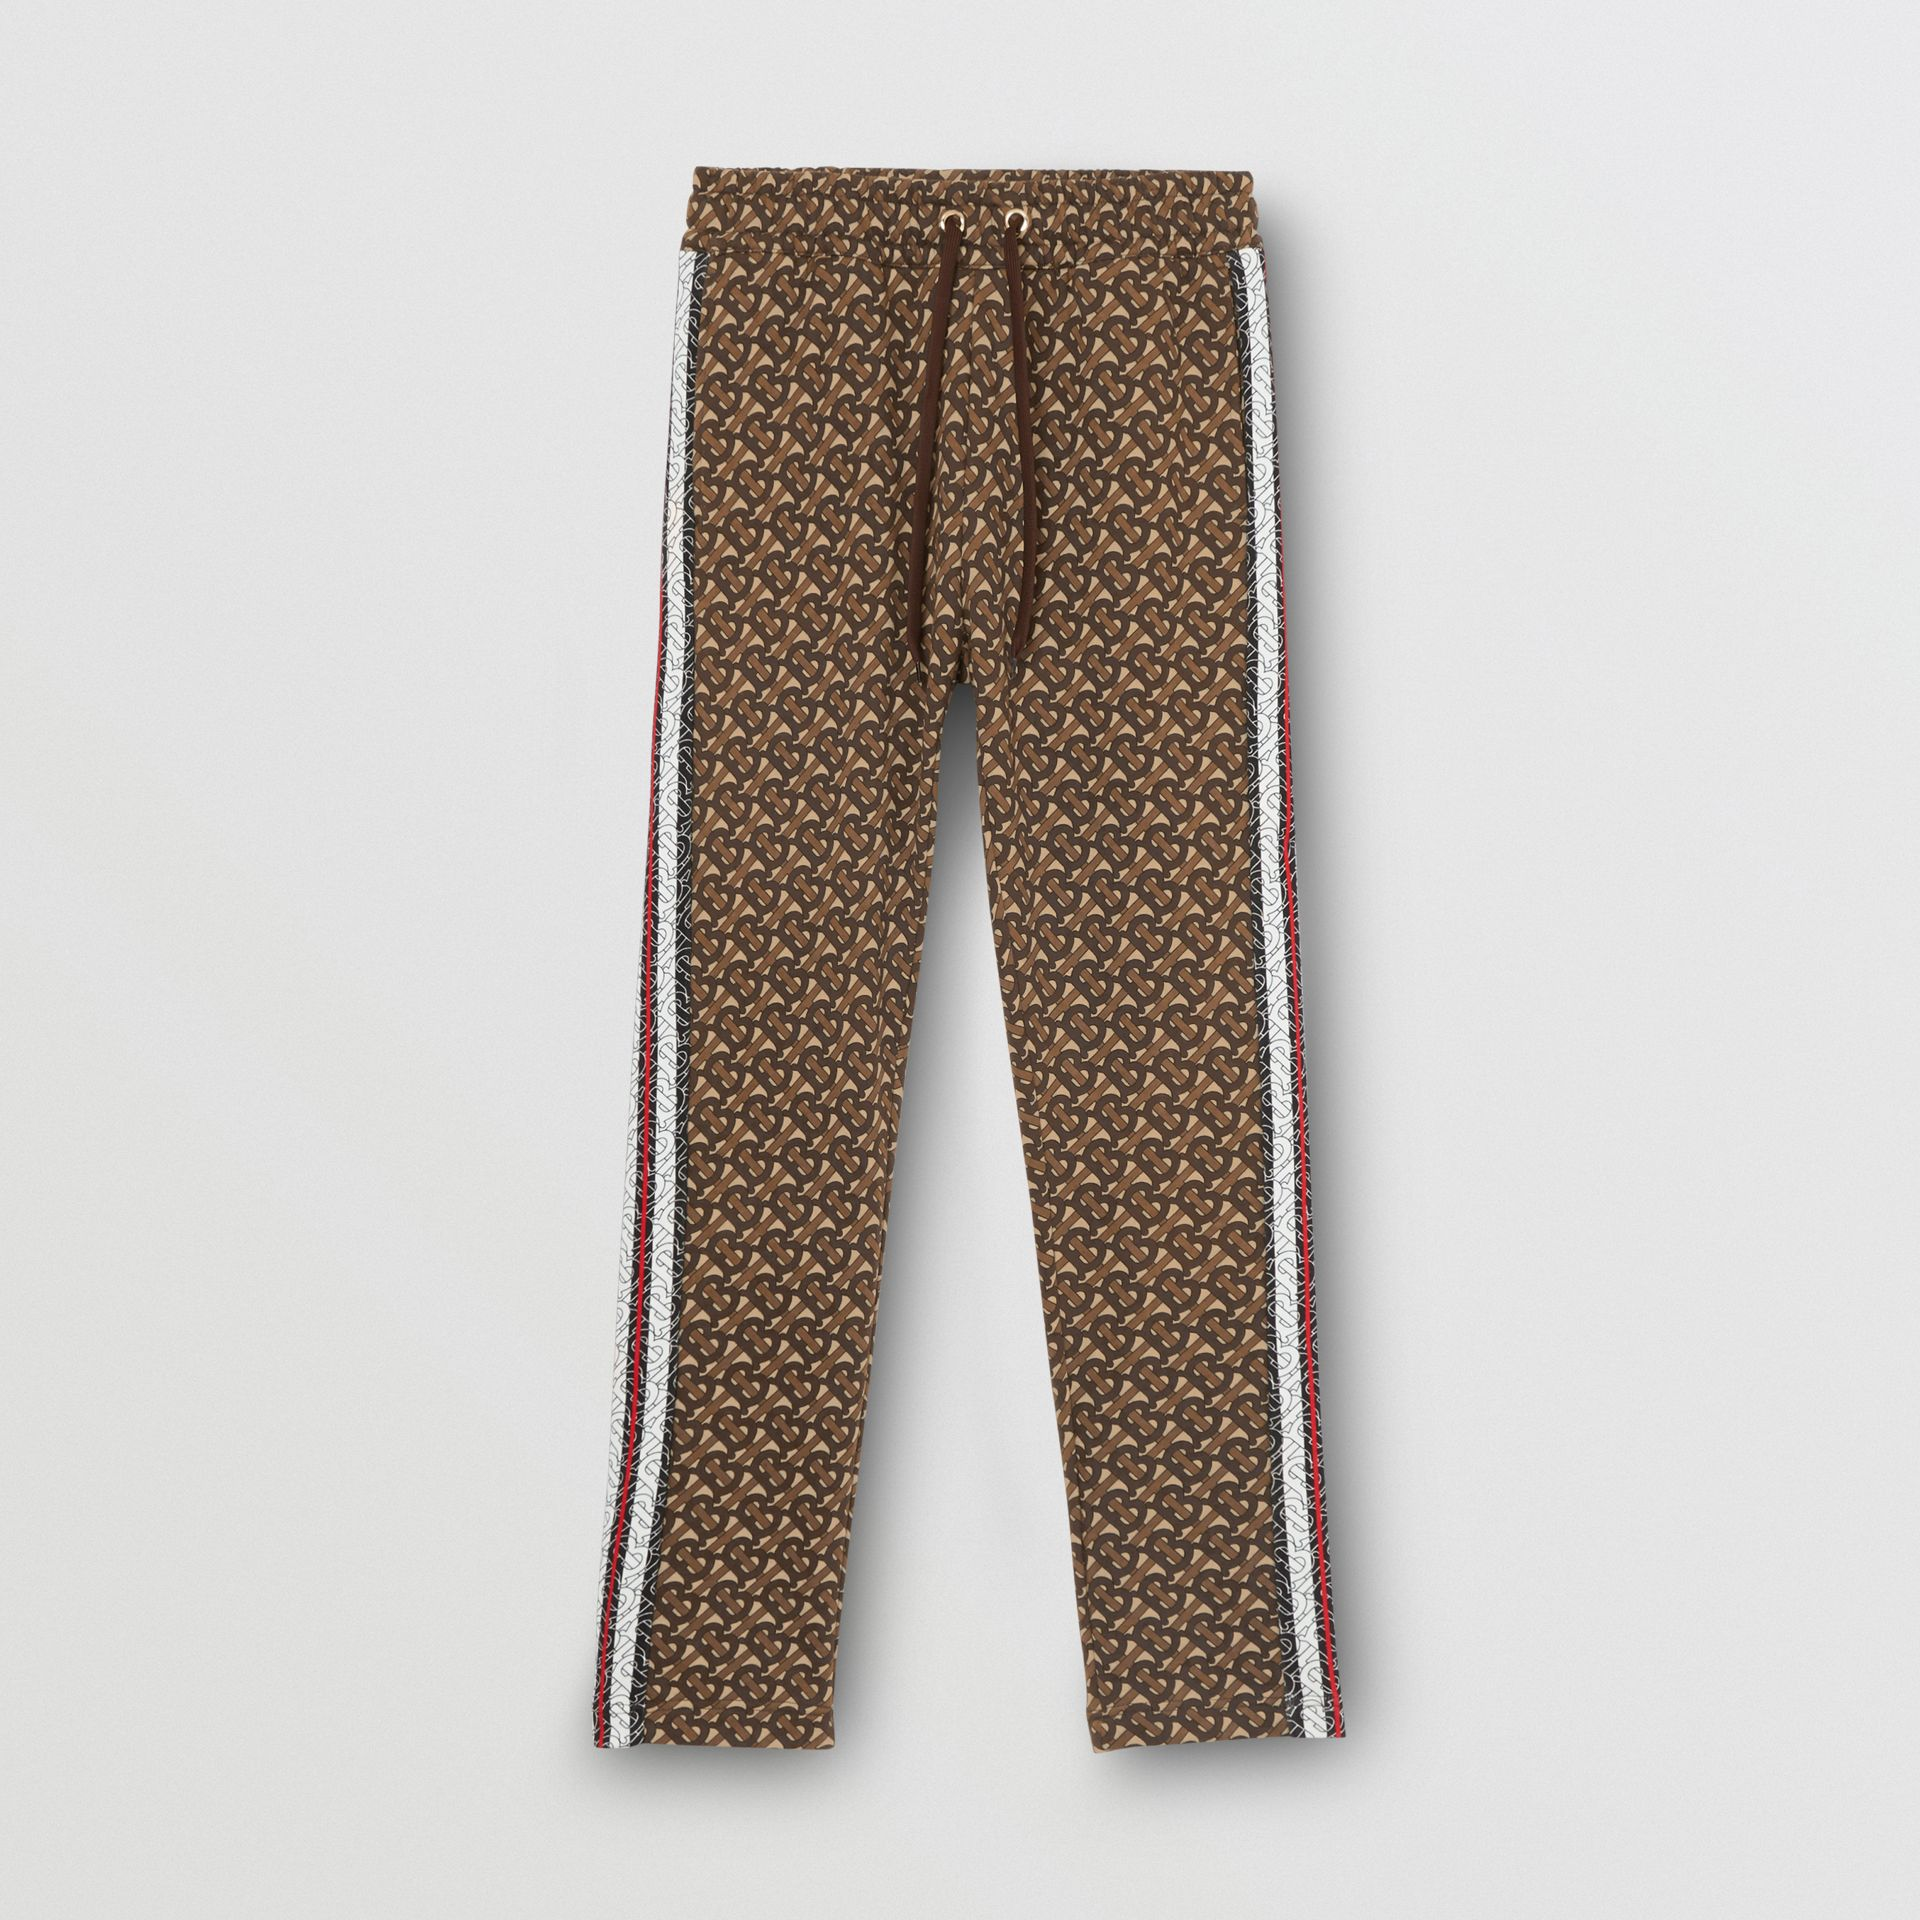 Monogram Stripe Print Cotton Trackpants in Bridle Brown - Women | Burberry United Kingdom - gallery image 3